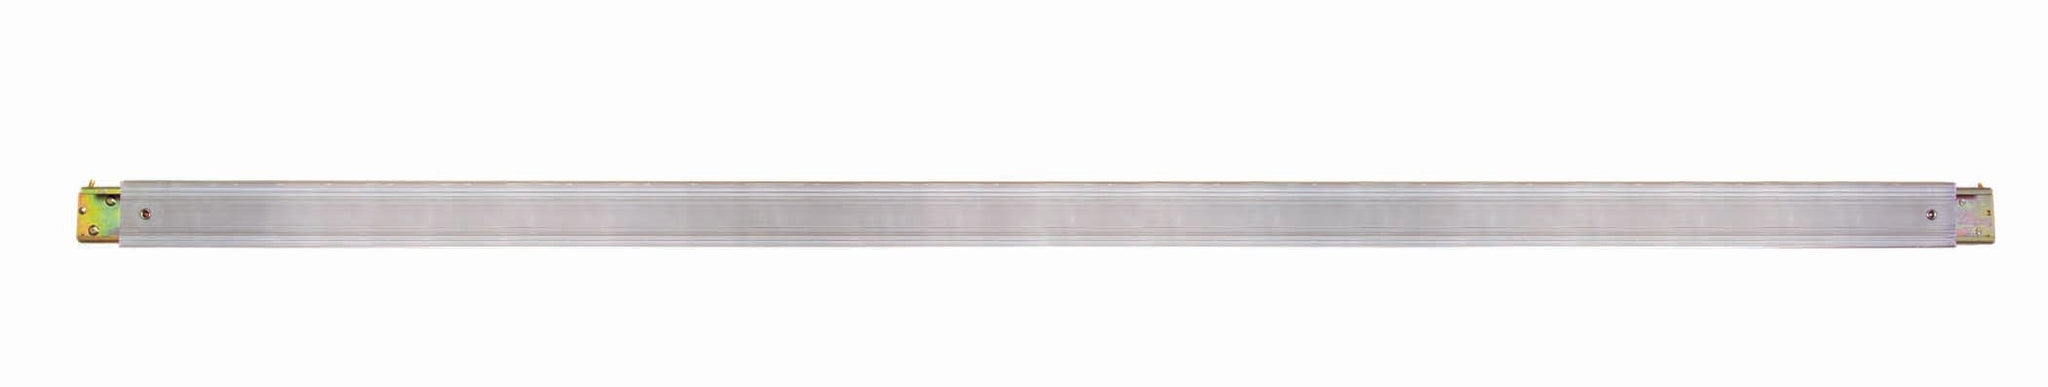 "SKID RESISTANT STANDARD BEAM ADJUSTABLE 85"" TO 95.5"""